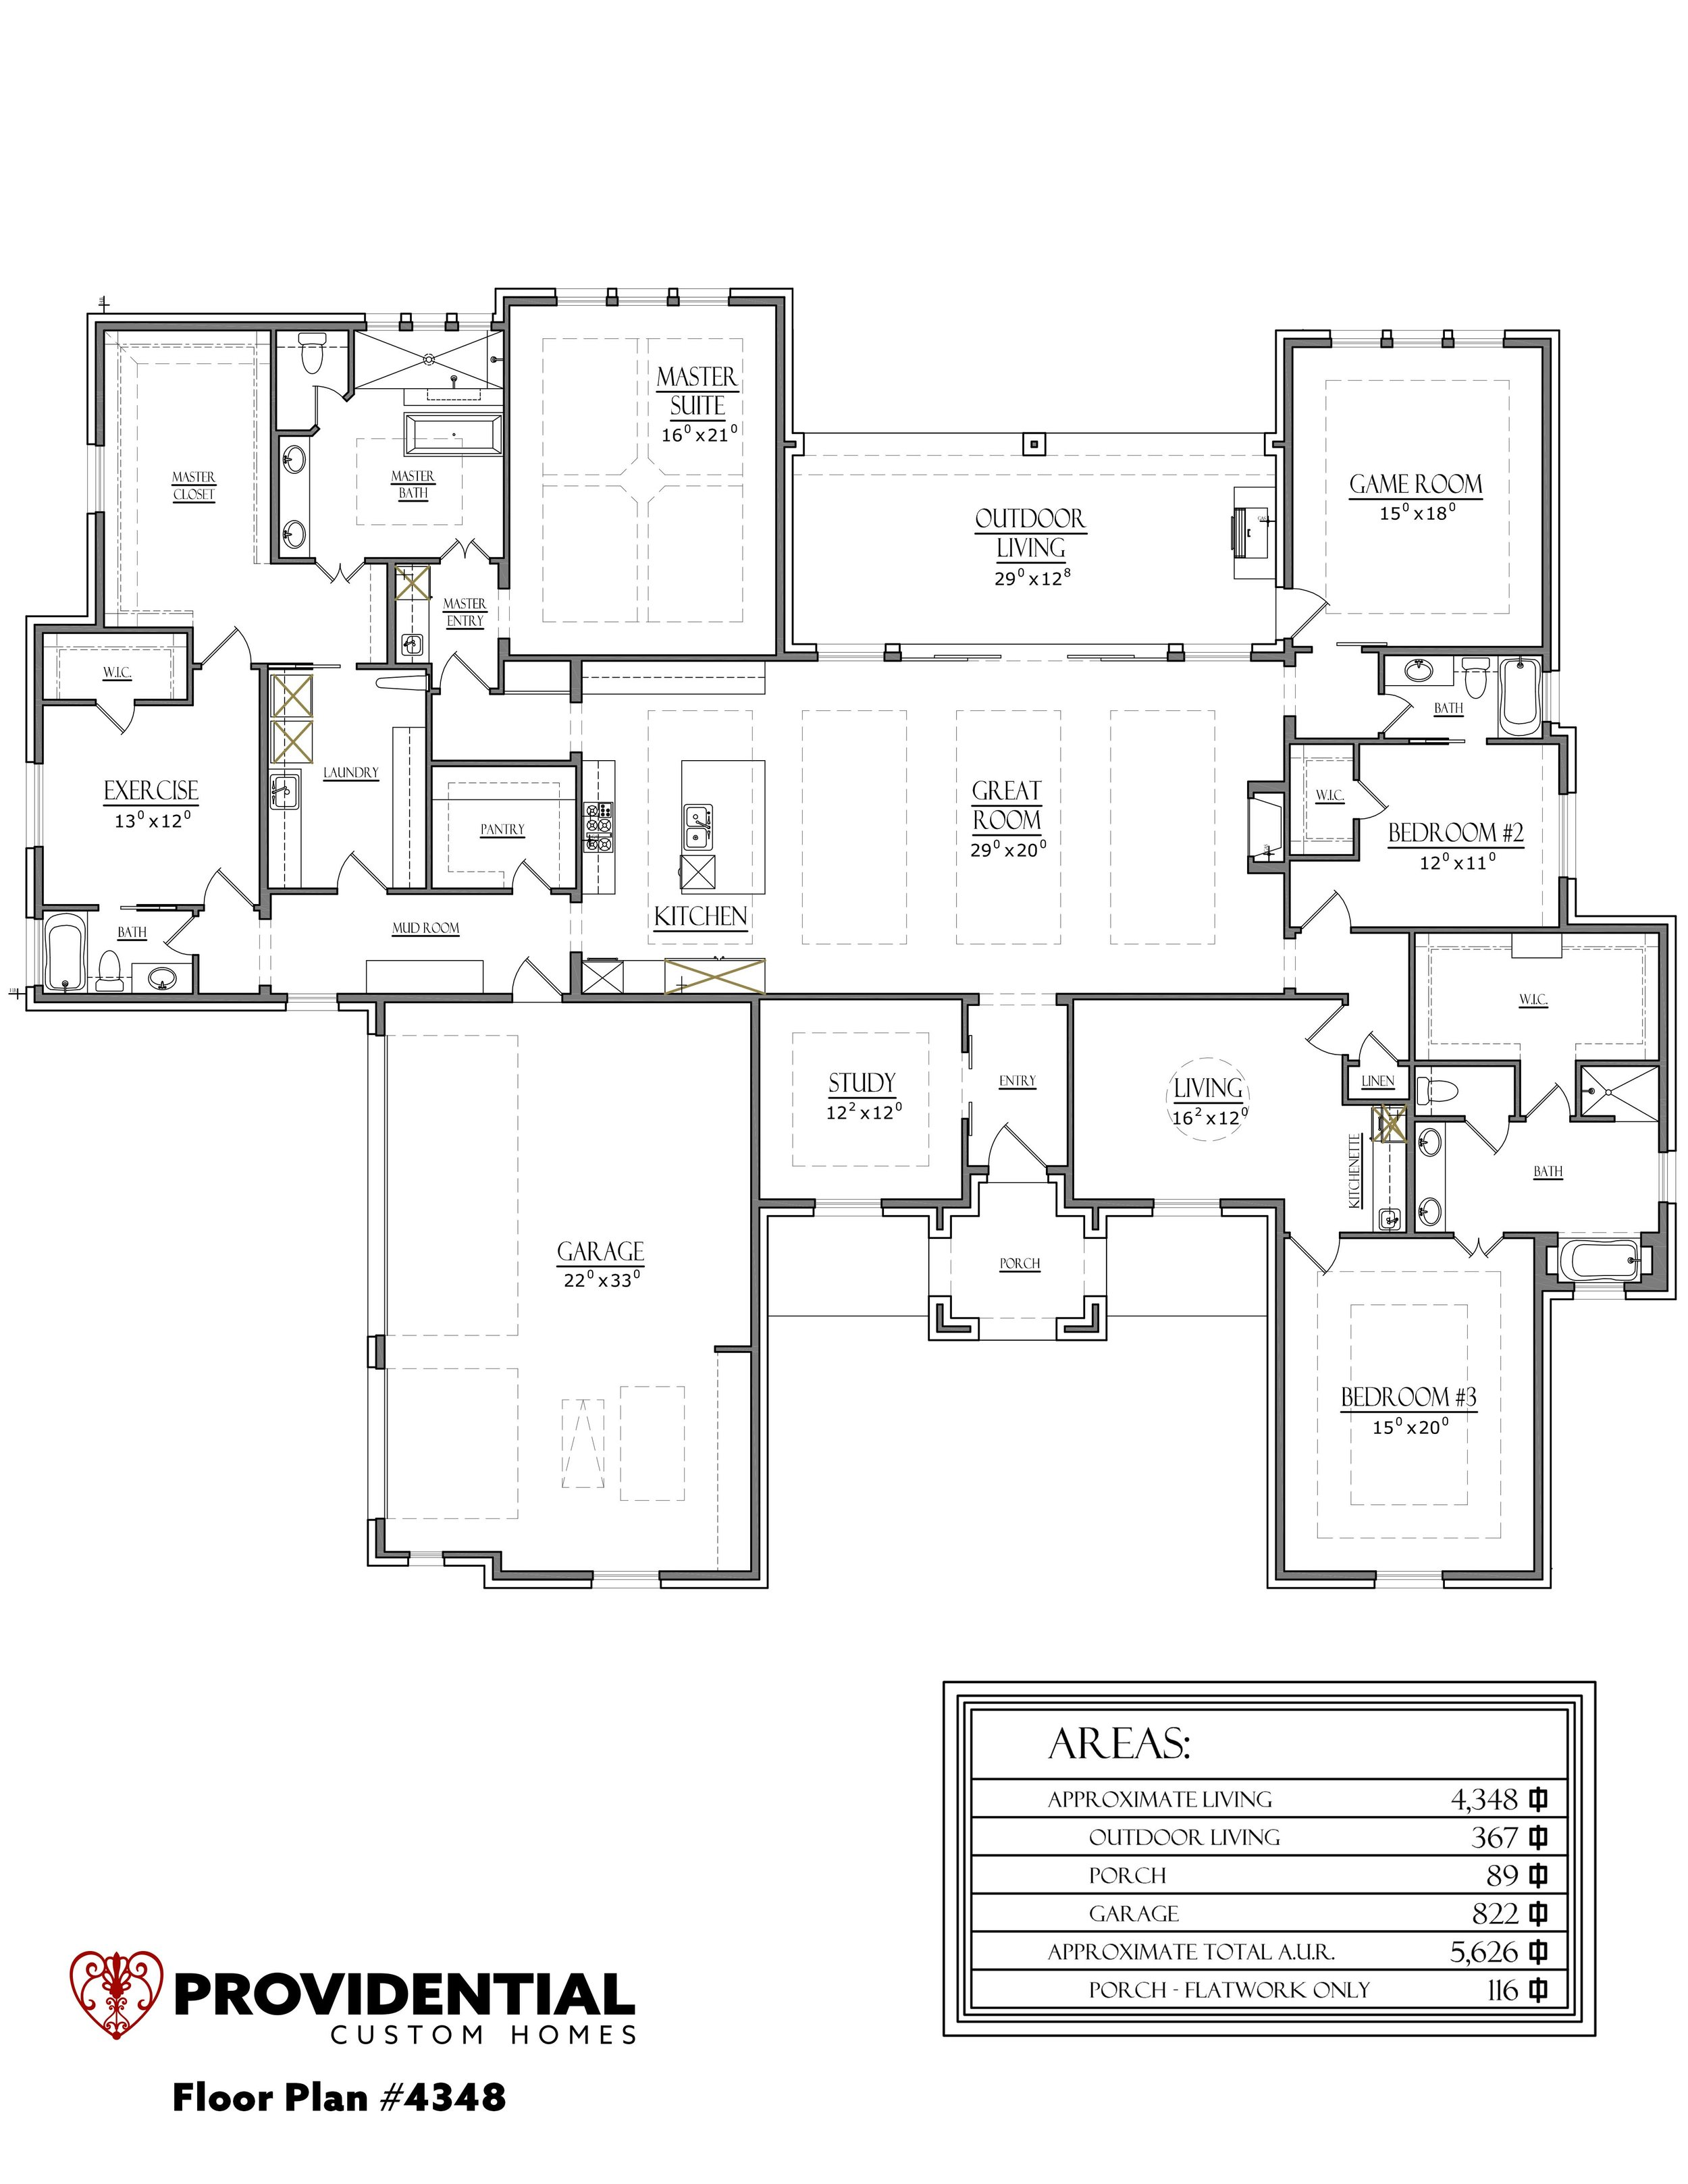 The FLOOR PLAN #4348.jpg